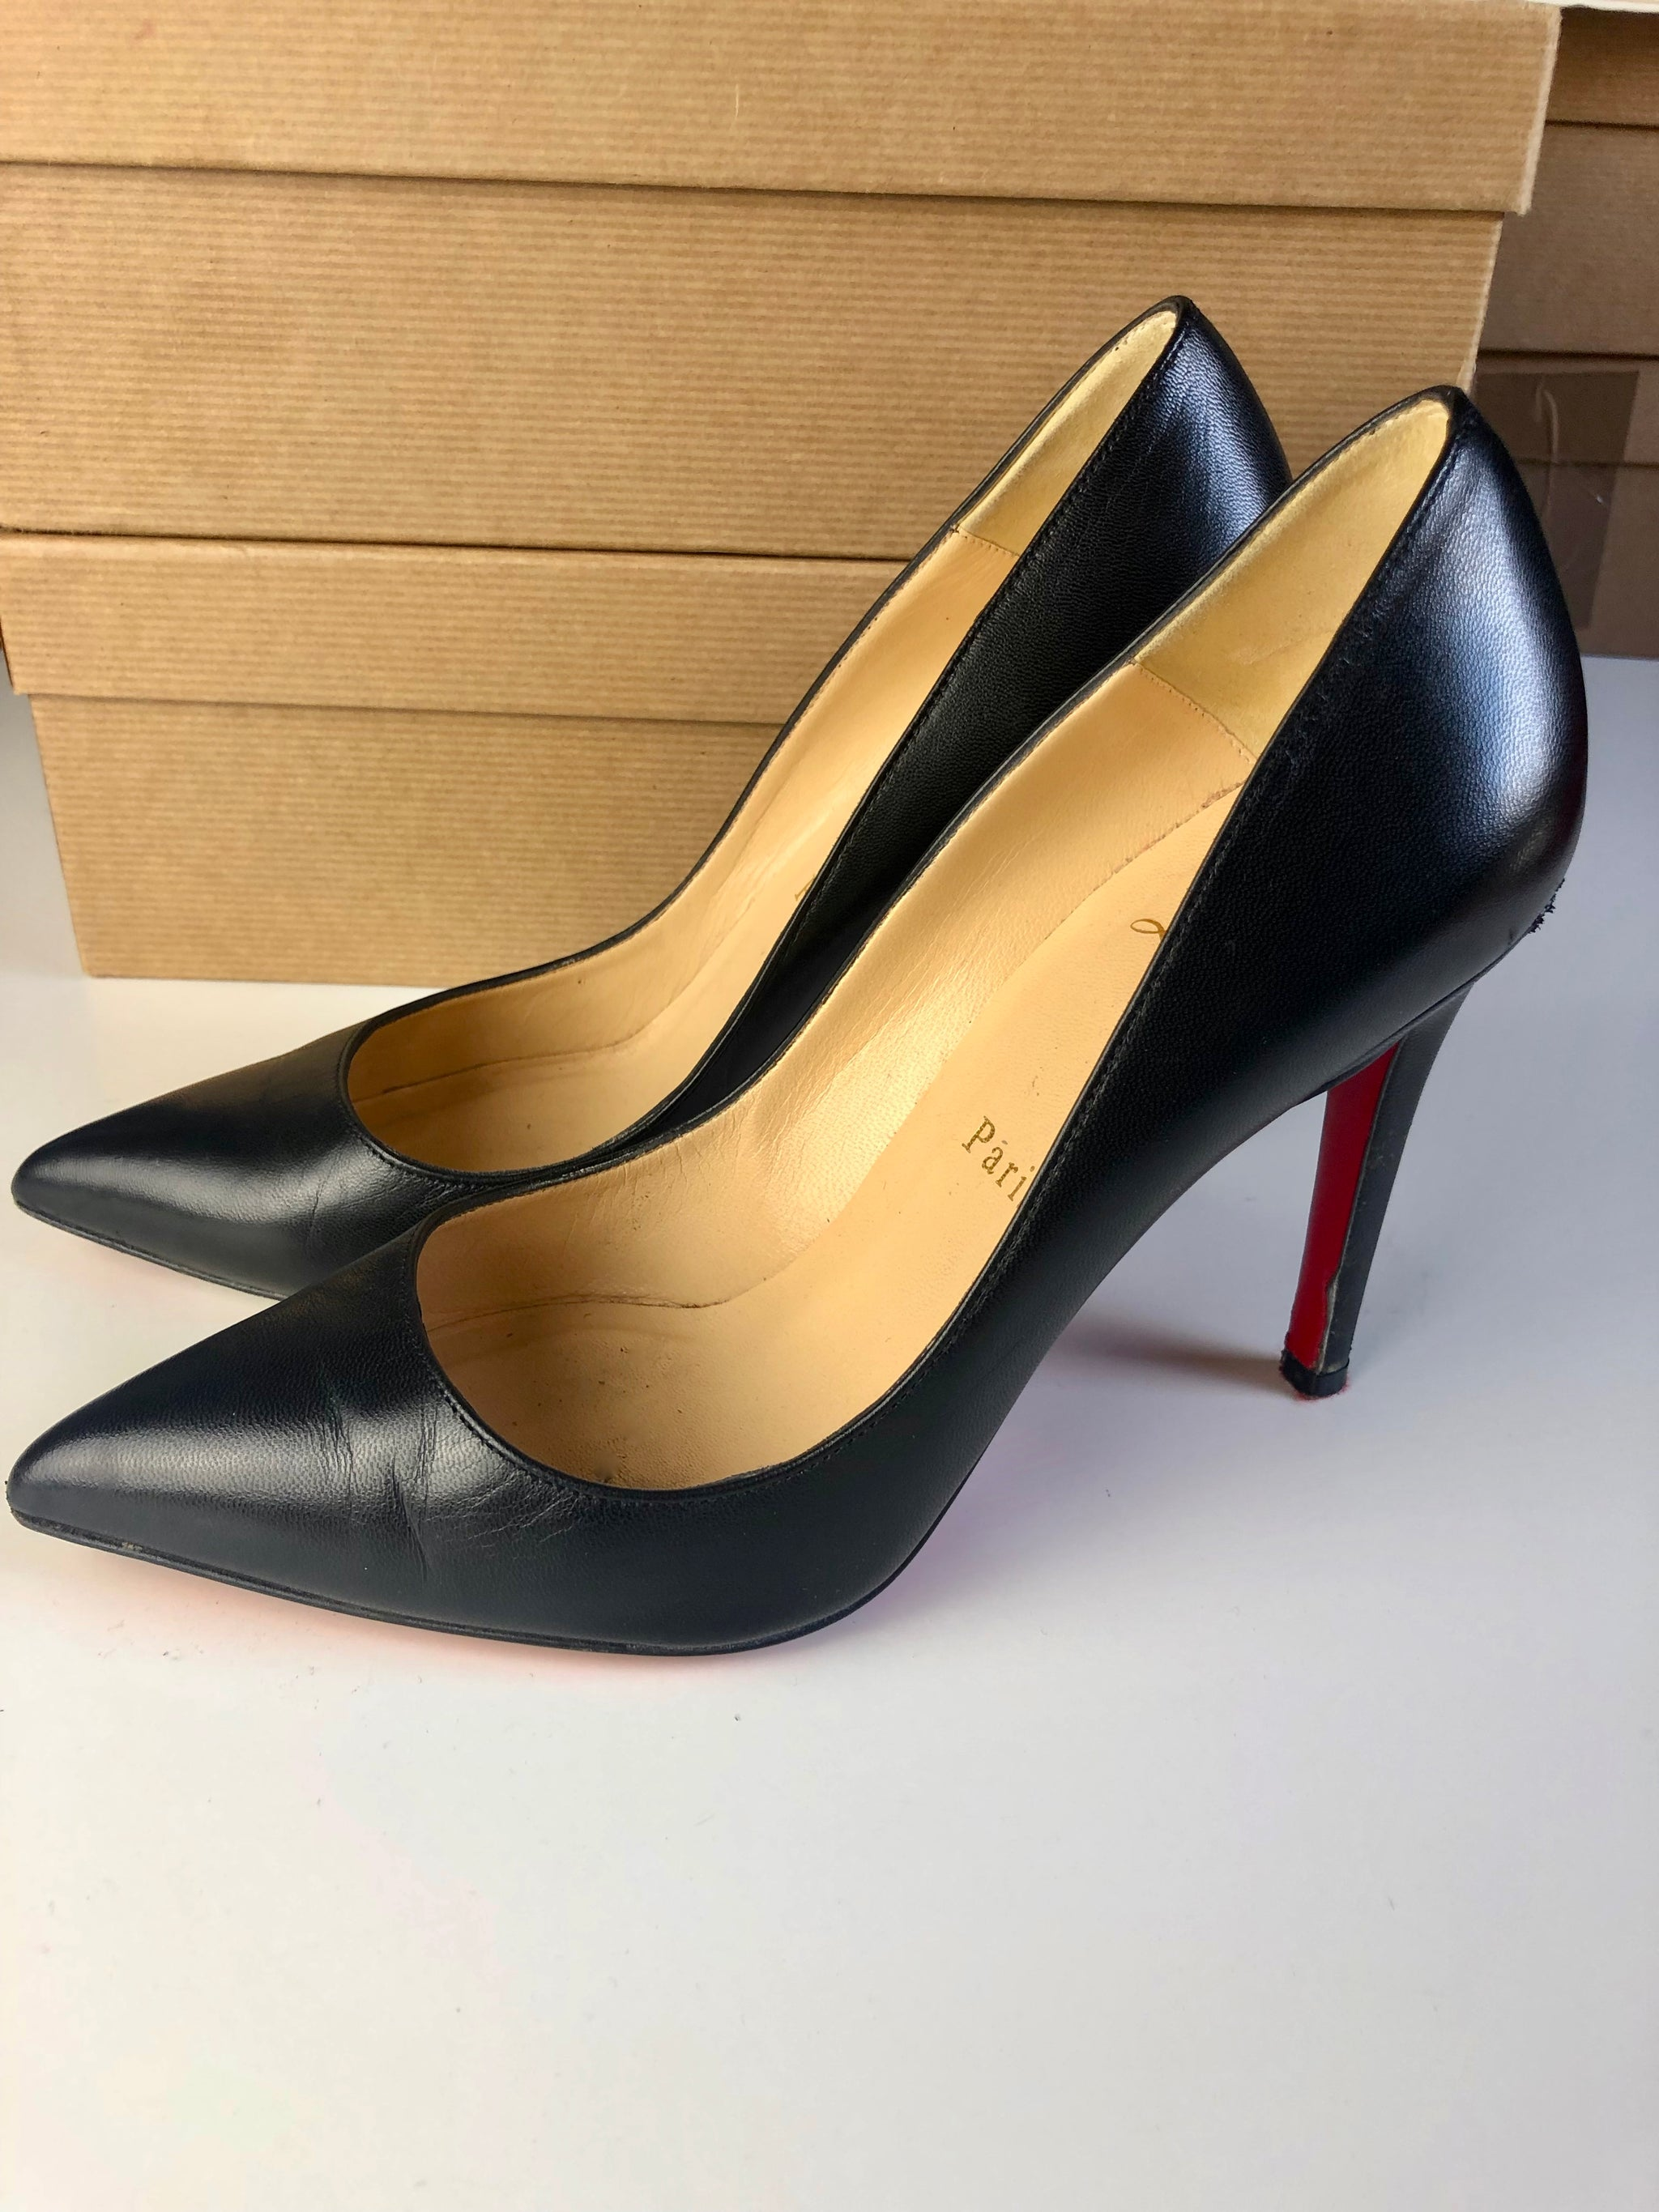 Christian Louboutin Pigalle 36,5 - Iconics Preloved Luxury